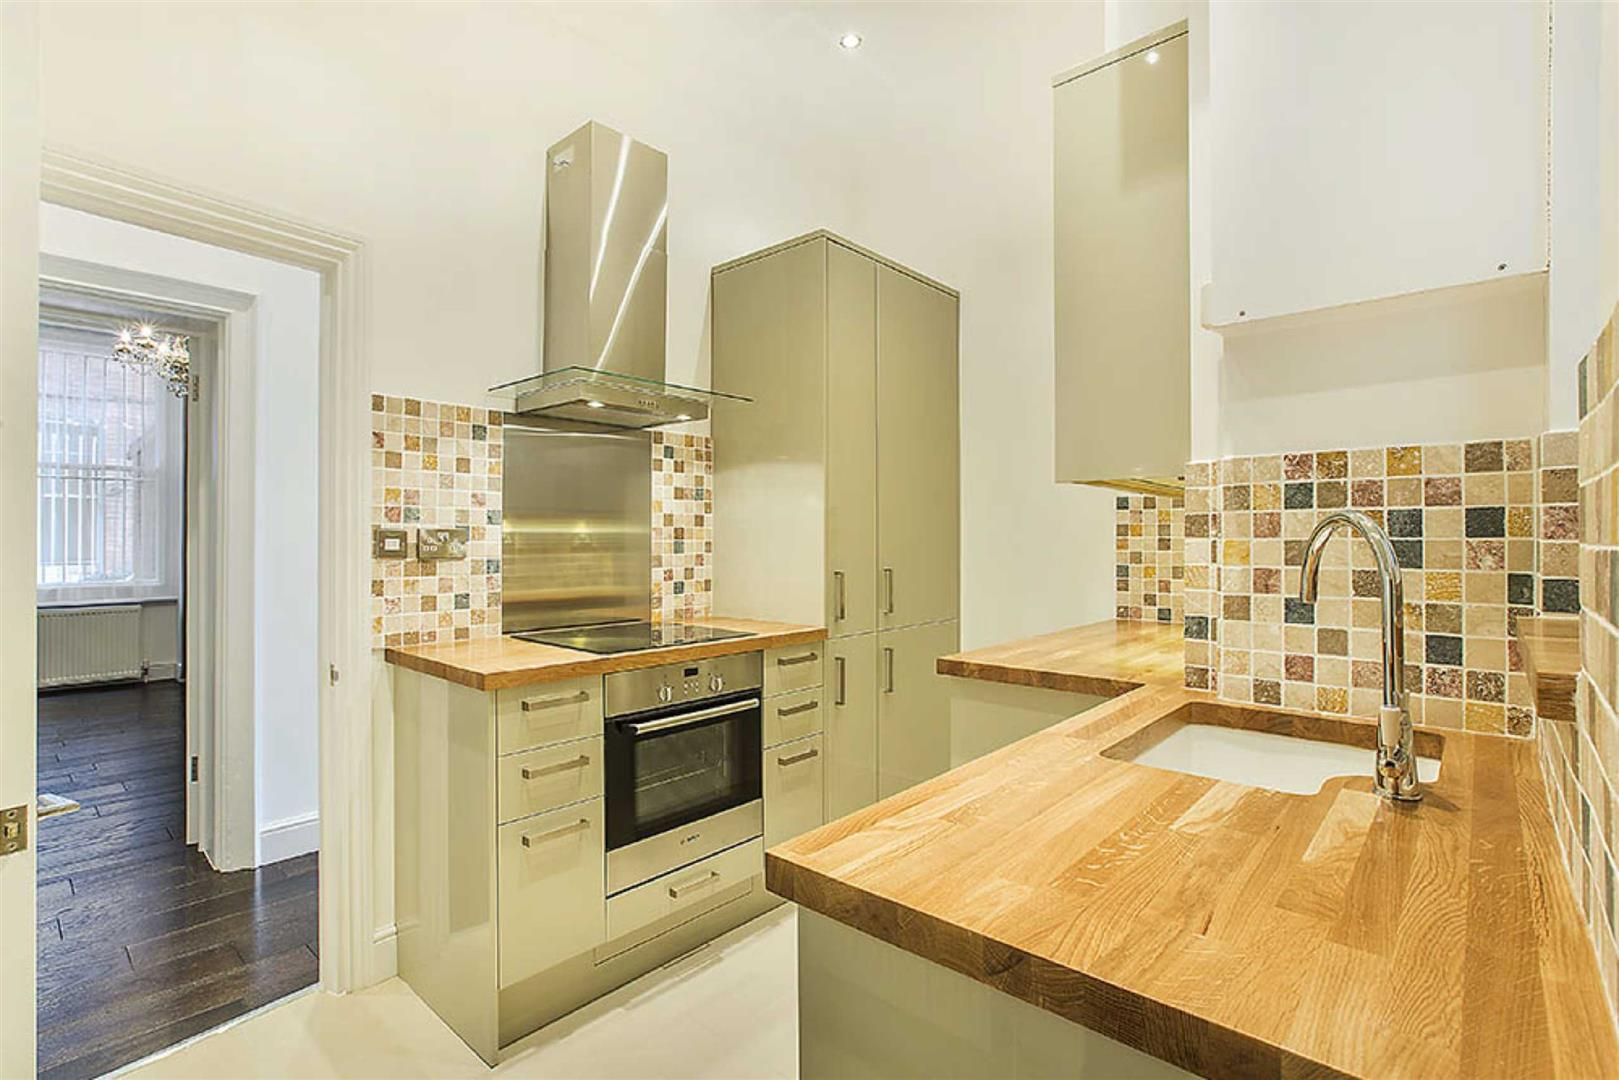 2 Bedrooms Flat for rent in Fitzgeorge Avenue, London, W14